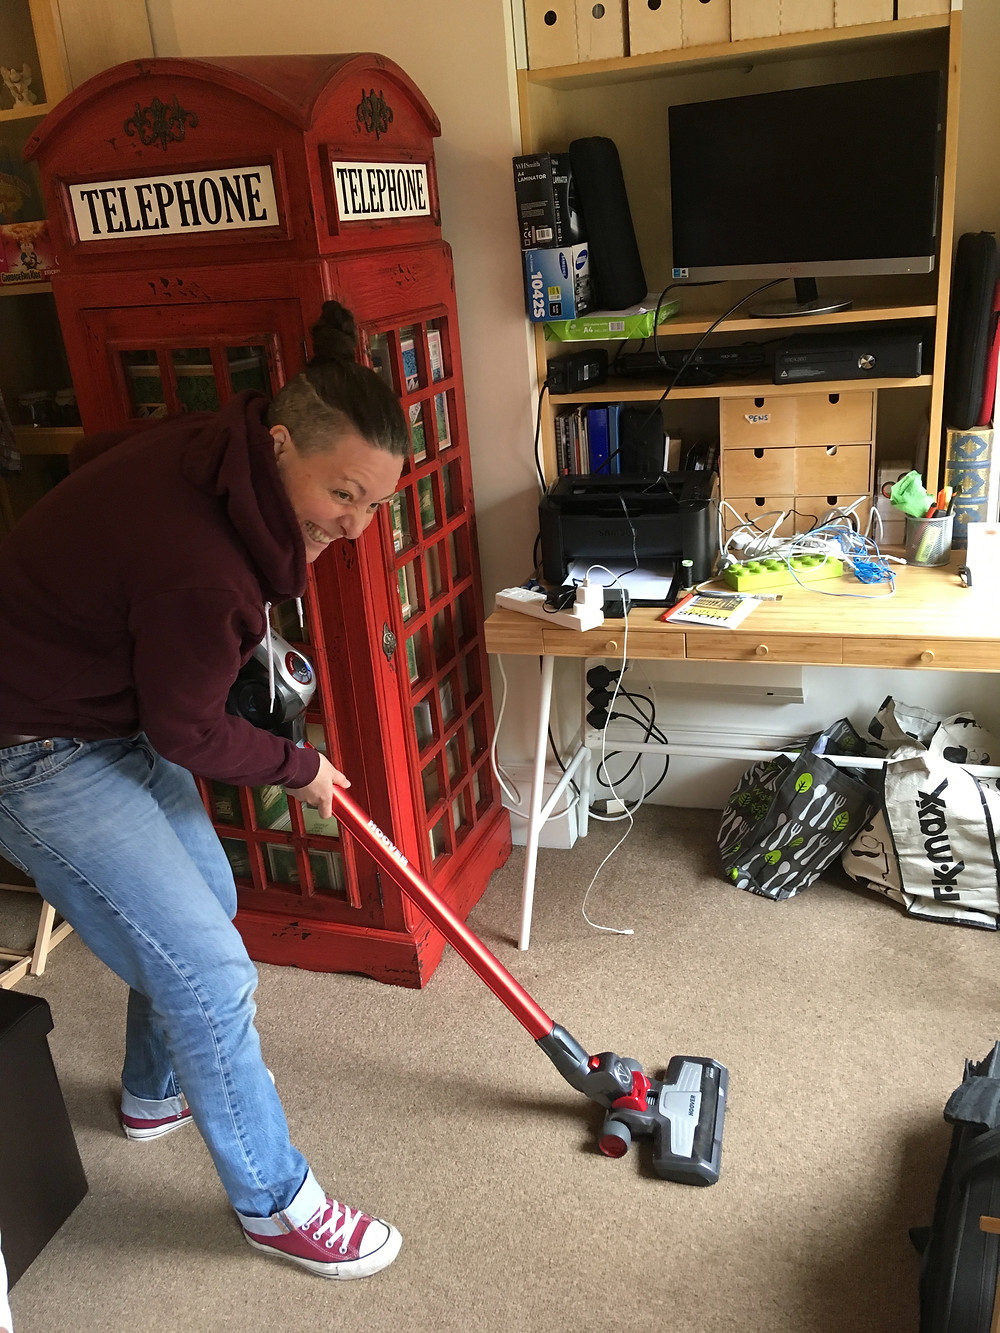 A humorous photo of me hoovering (inspired by Queen song 'I want to break free')